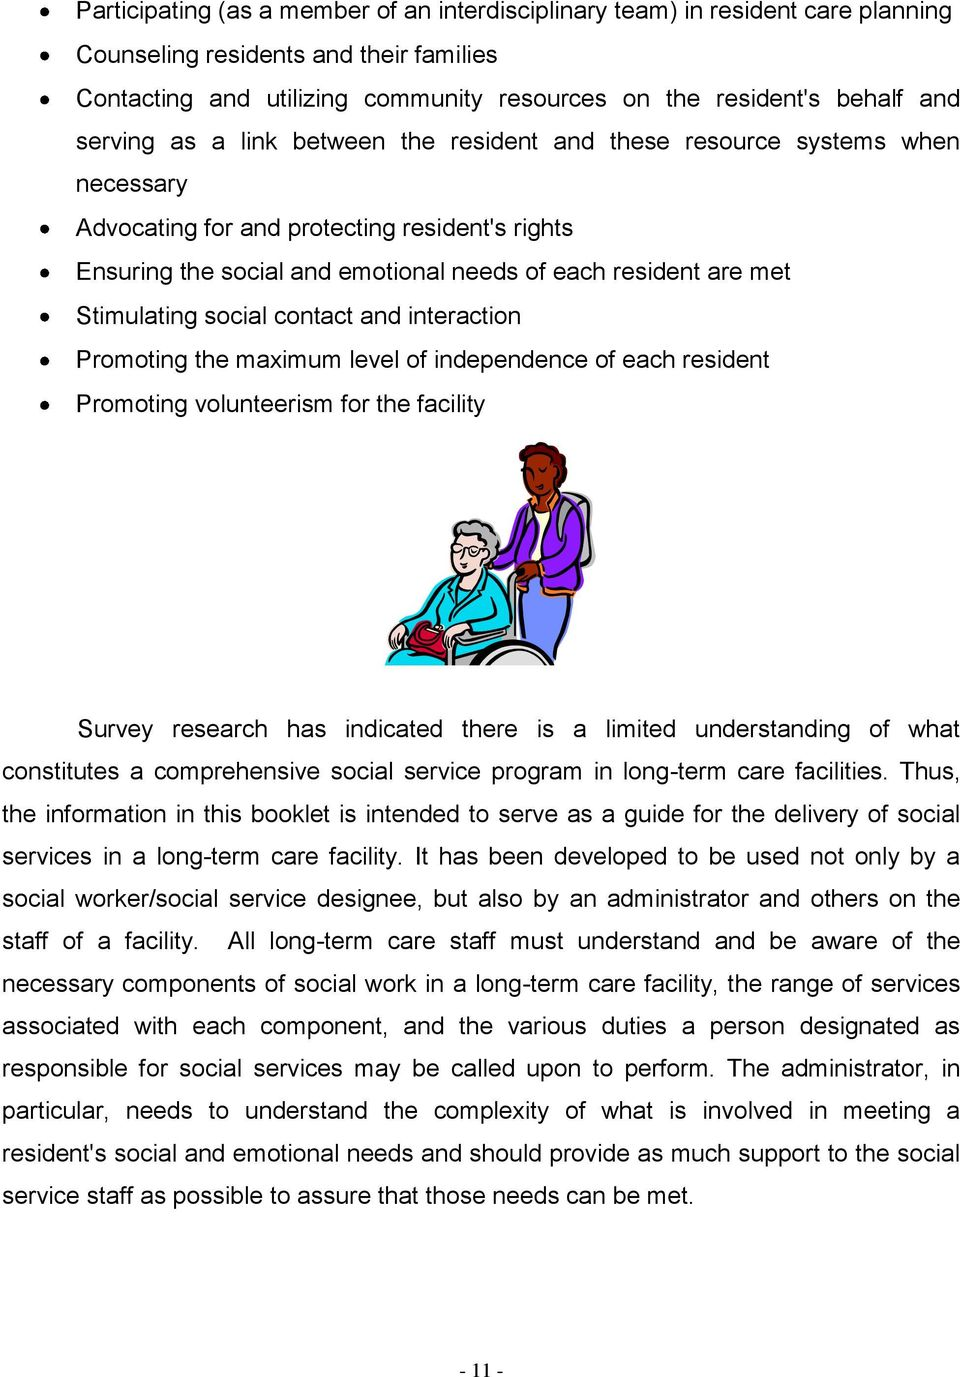 pwsc25 understanding the role of the social care worker Understand the role of the social care worker unit sector reference: pwcs 25  level: 2 credit value: 1 guided learning hours: 9 unit expiry date: 31/07/2015.